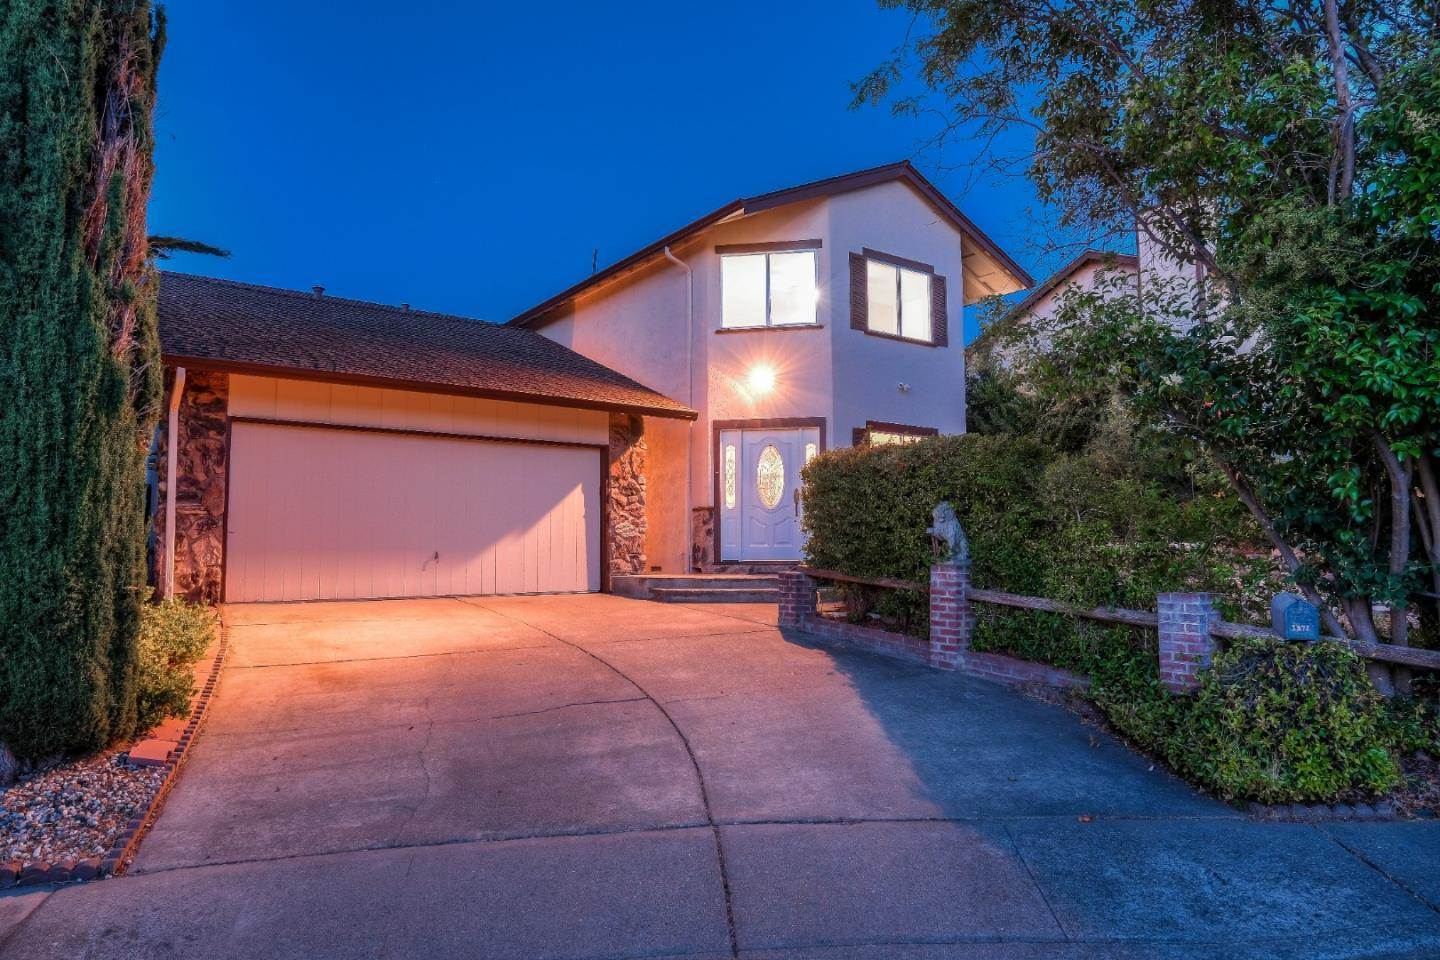 1371 Fern Hill LN, Concord, California